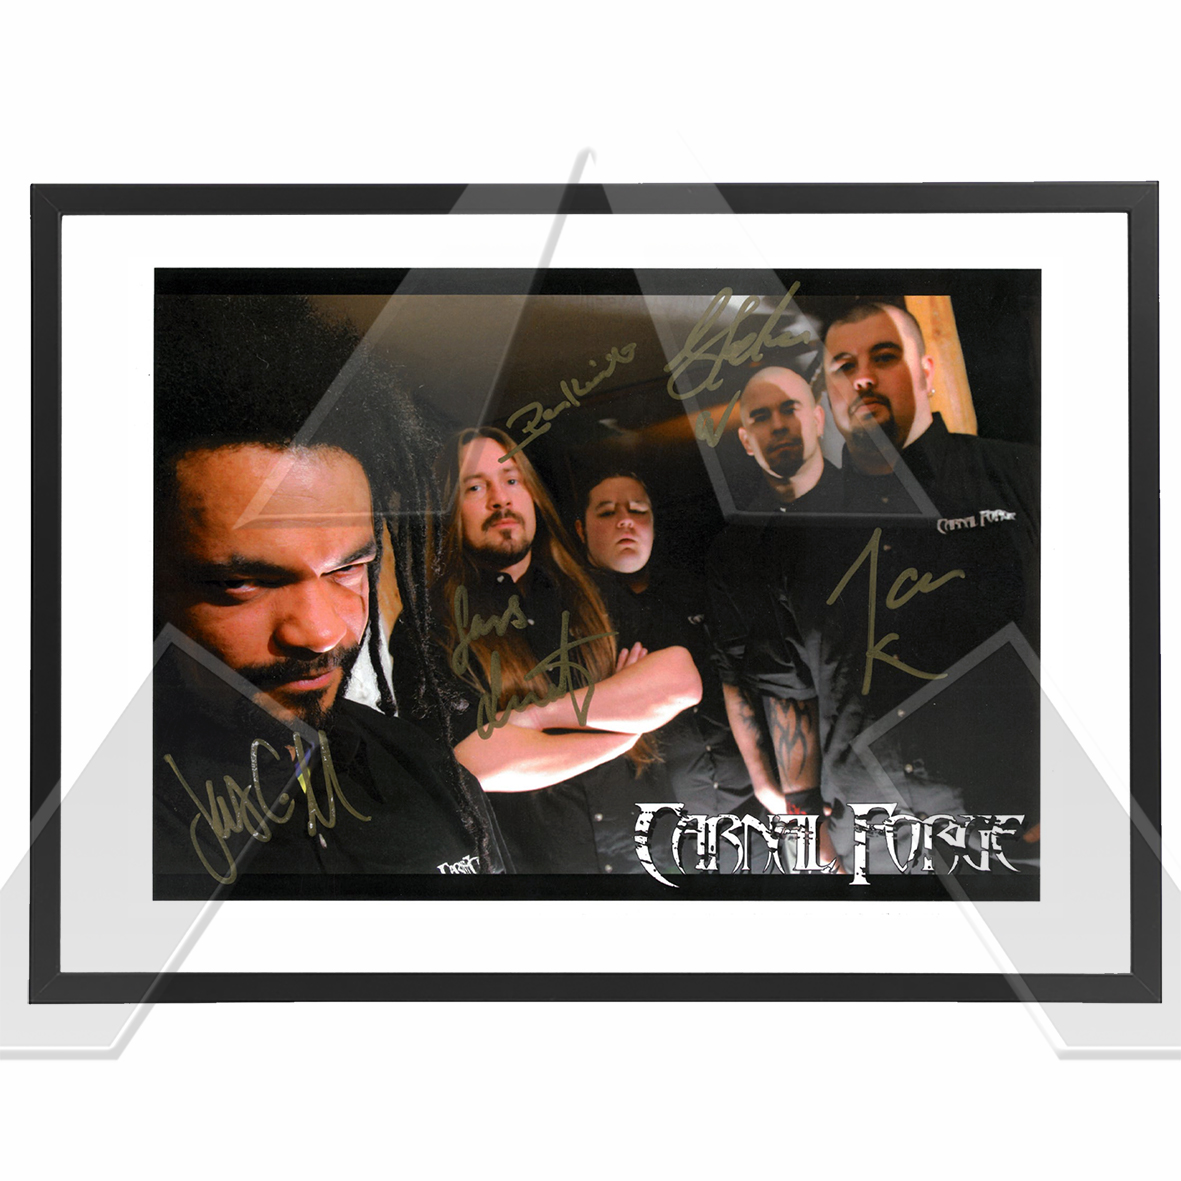 Carnal Forge ★ Testify for my Victims (photograph signed)